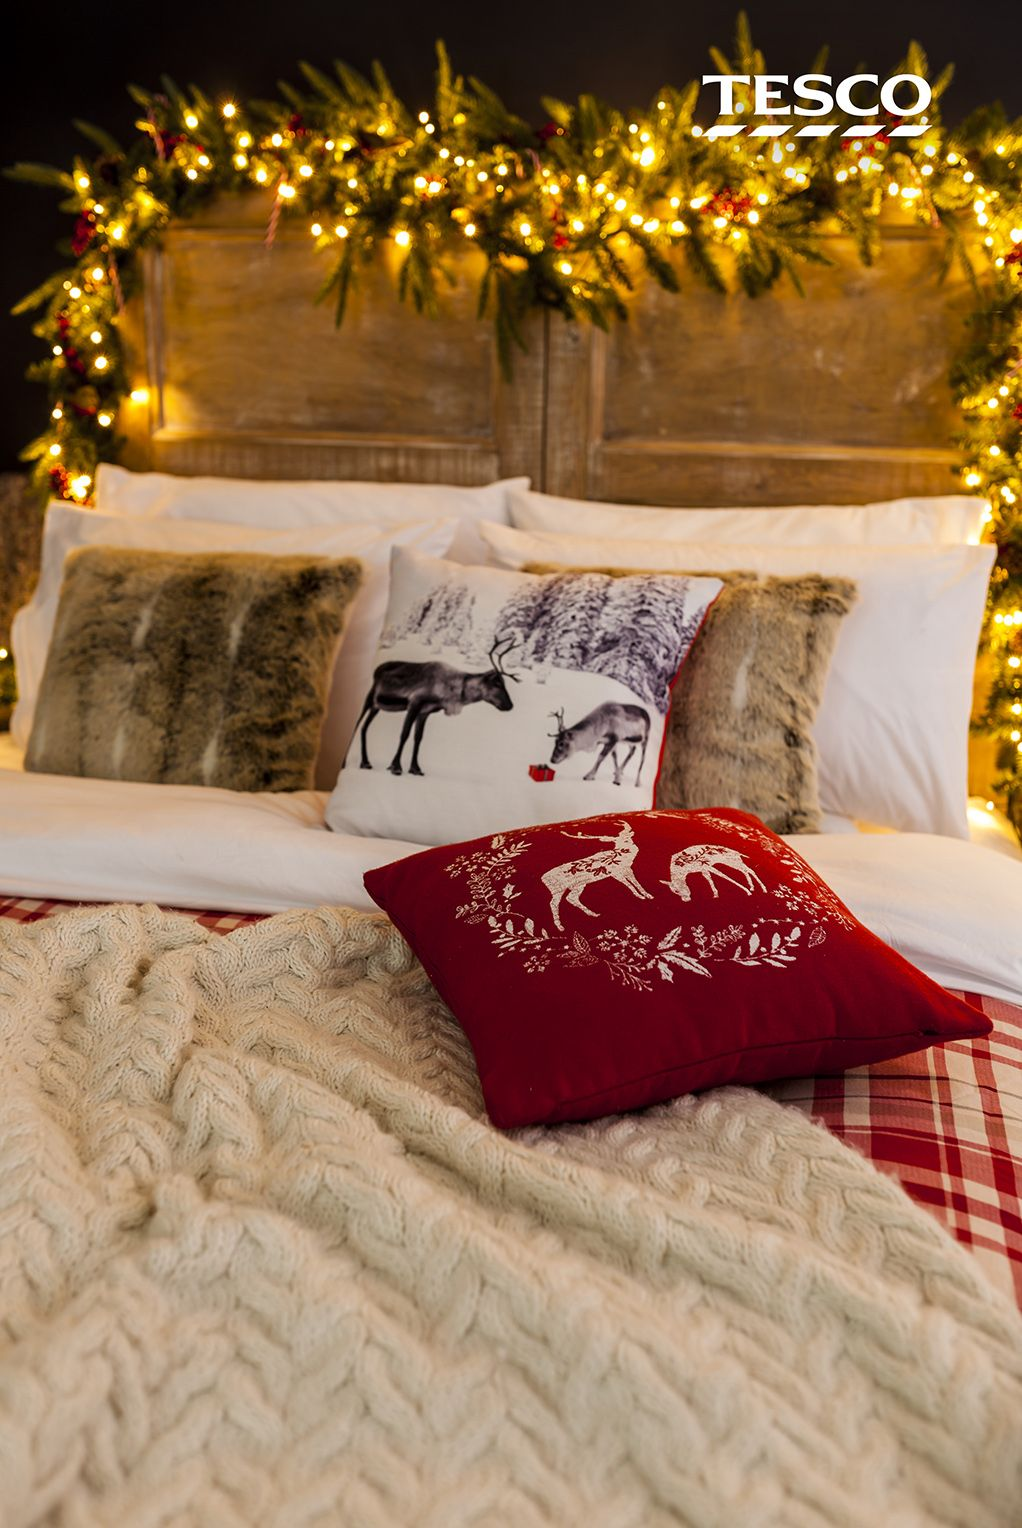 This Christmas stag cushion is a stylish way of